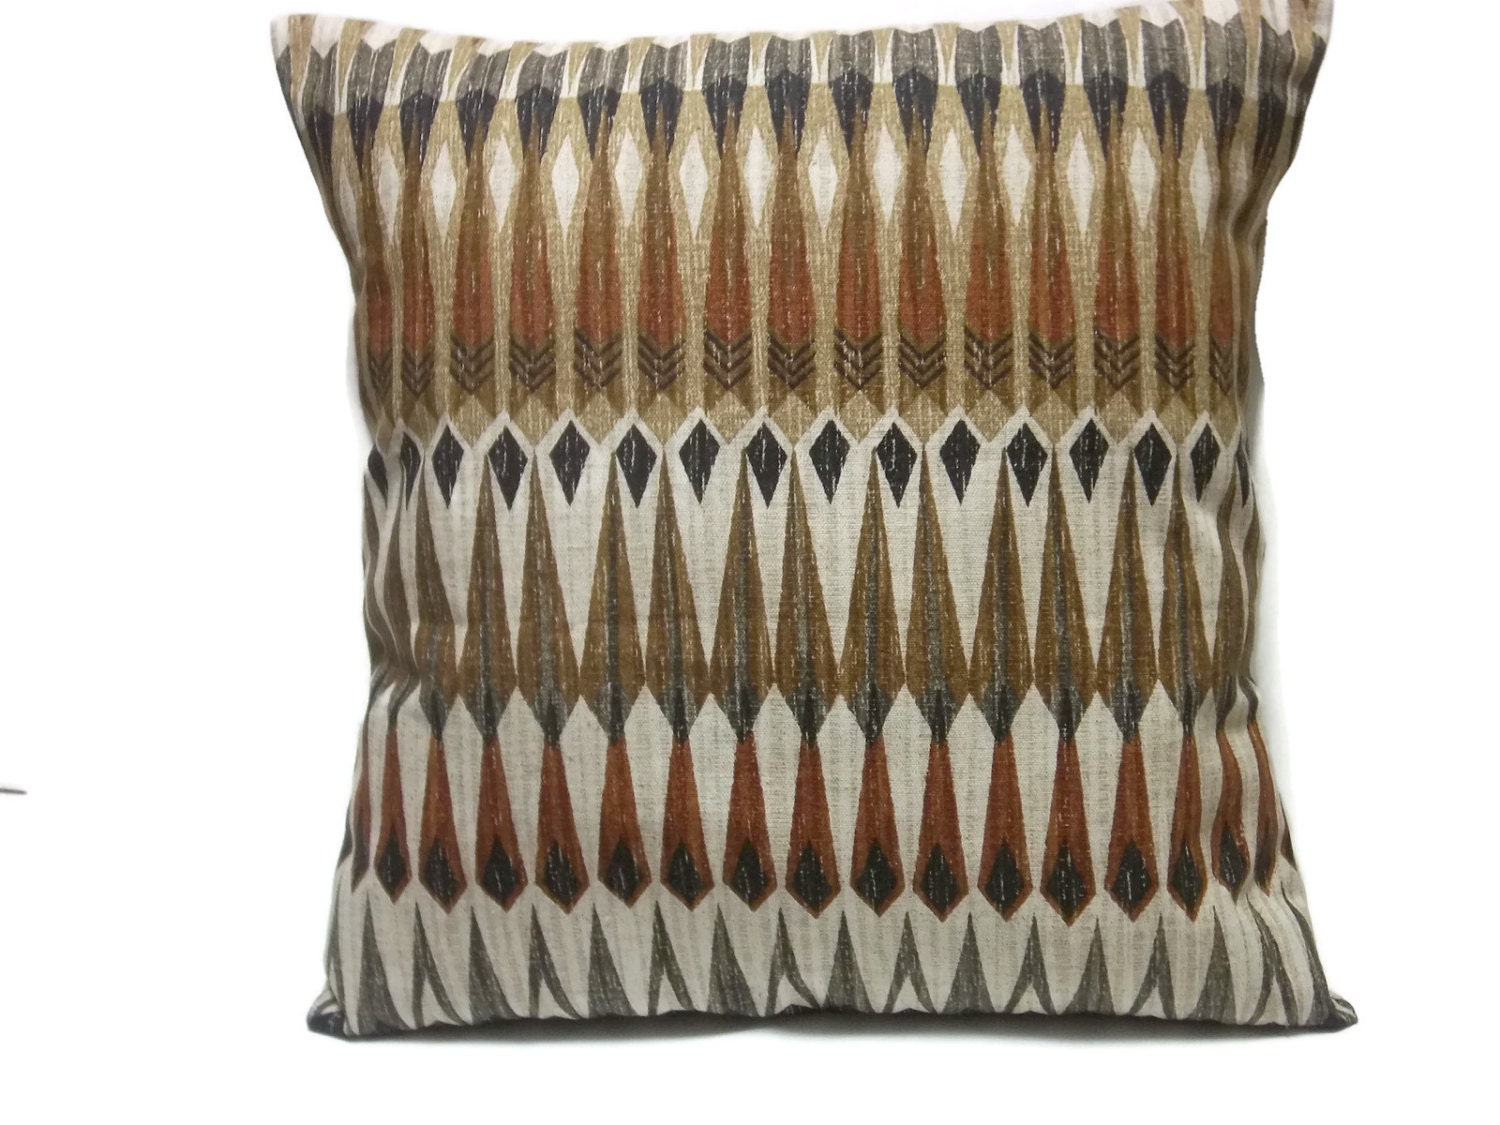 decorative pillow cover gray rust black brown taupe multi. Black Bedroom Furniture Sets. Home Design Ideas